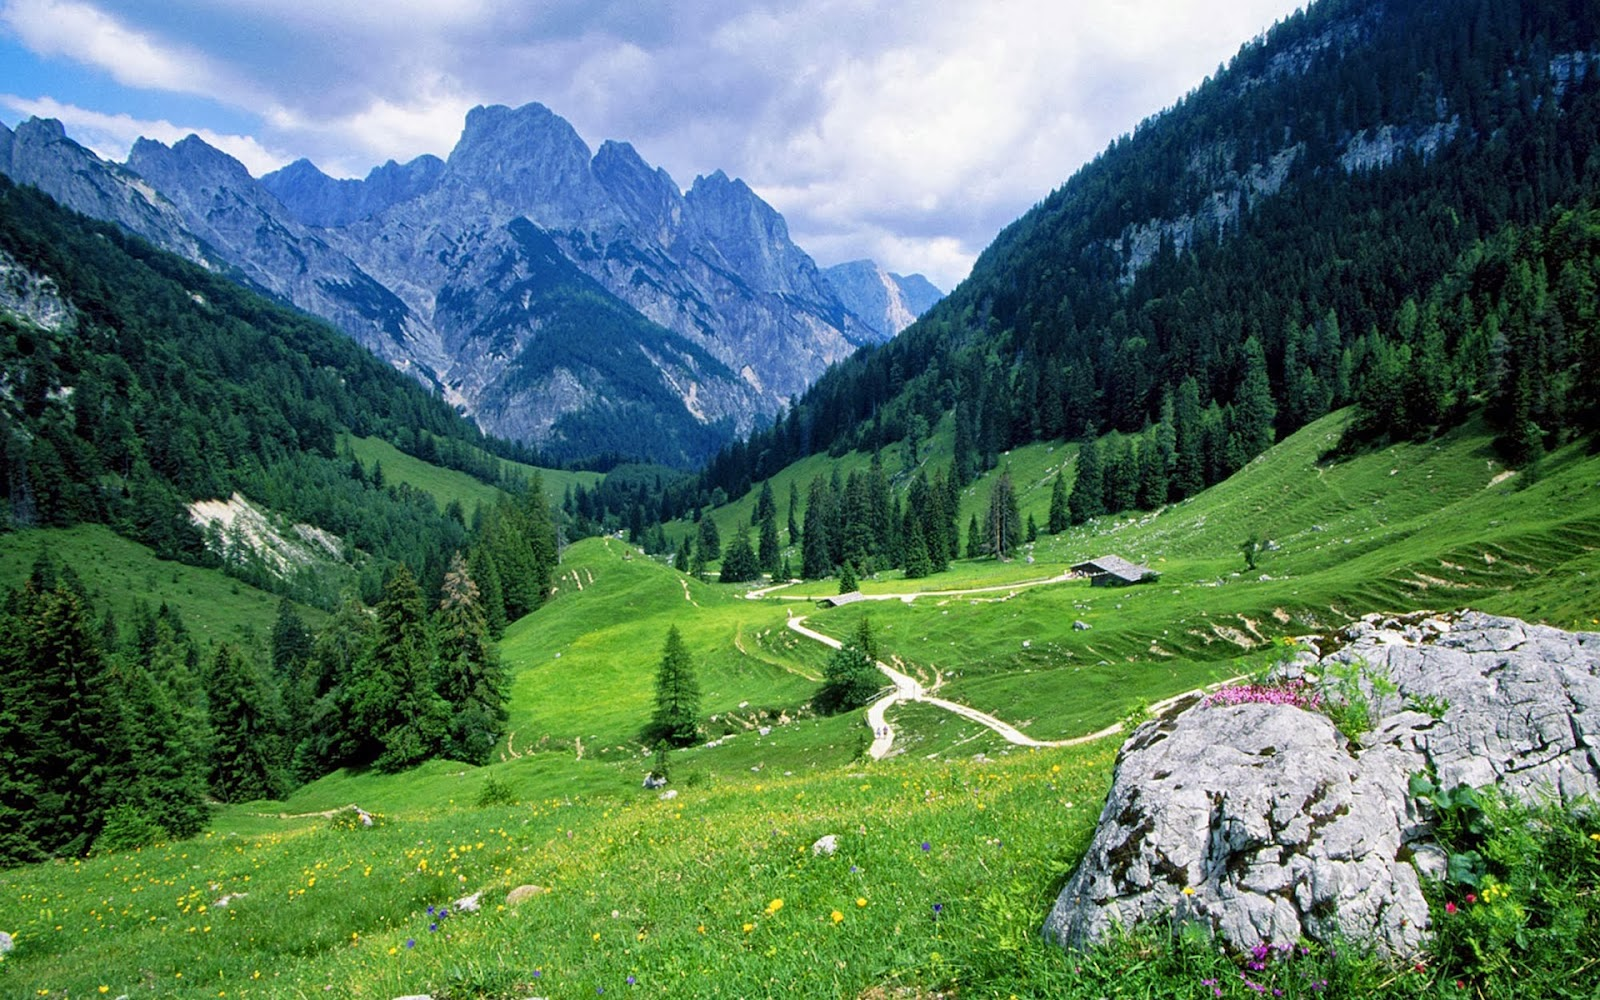 Mountains Green Nature Widescreen HD Desktop Backgrounds Images Wallpapers